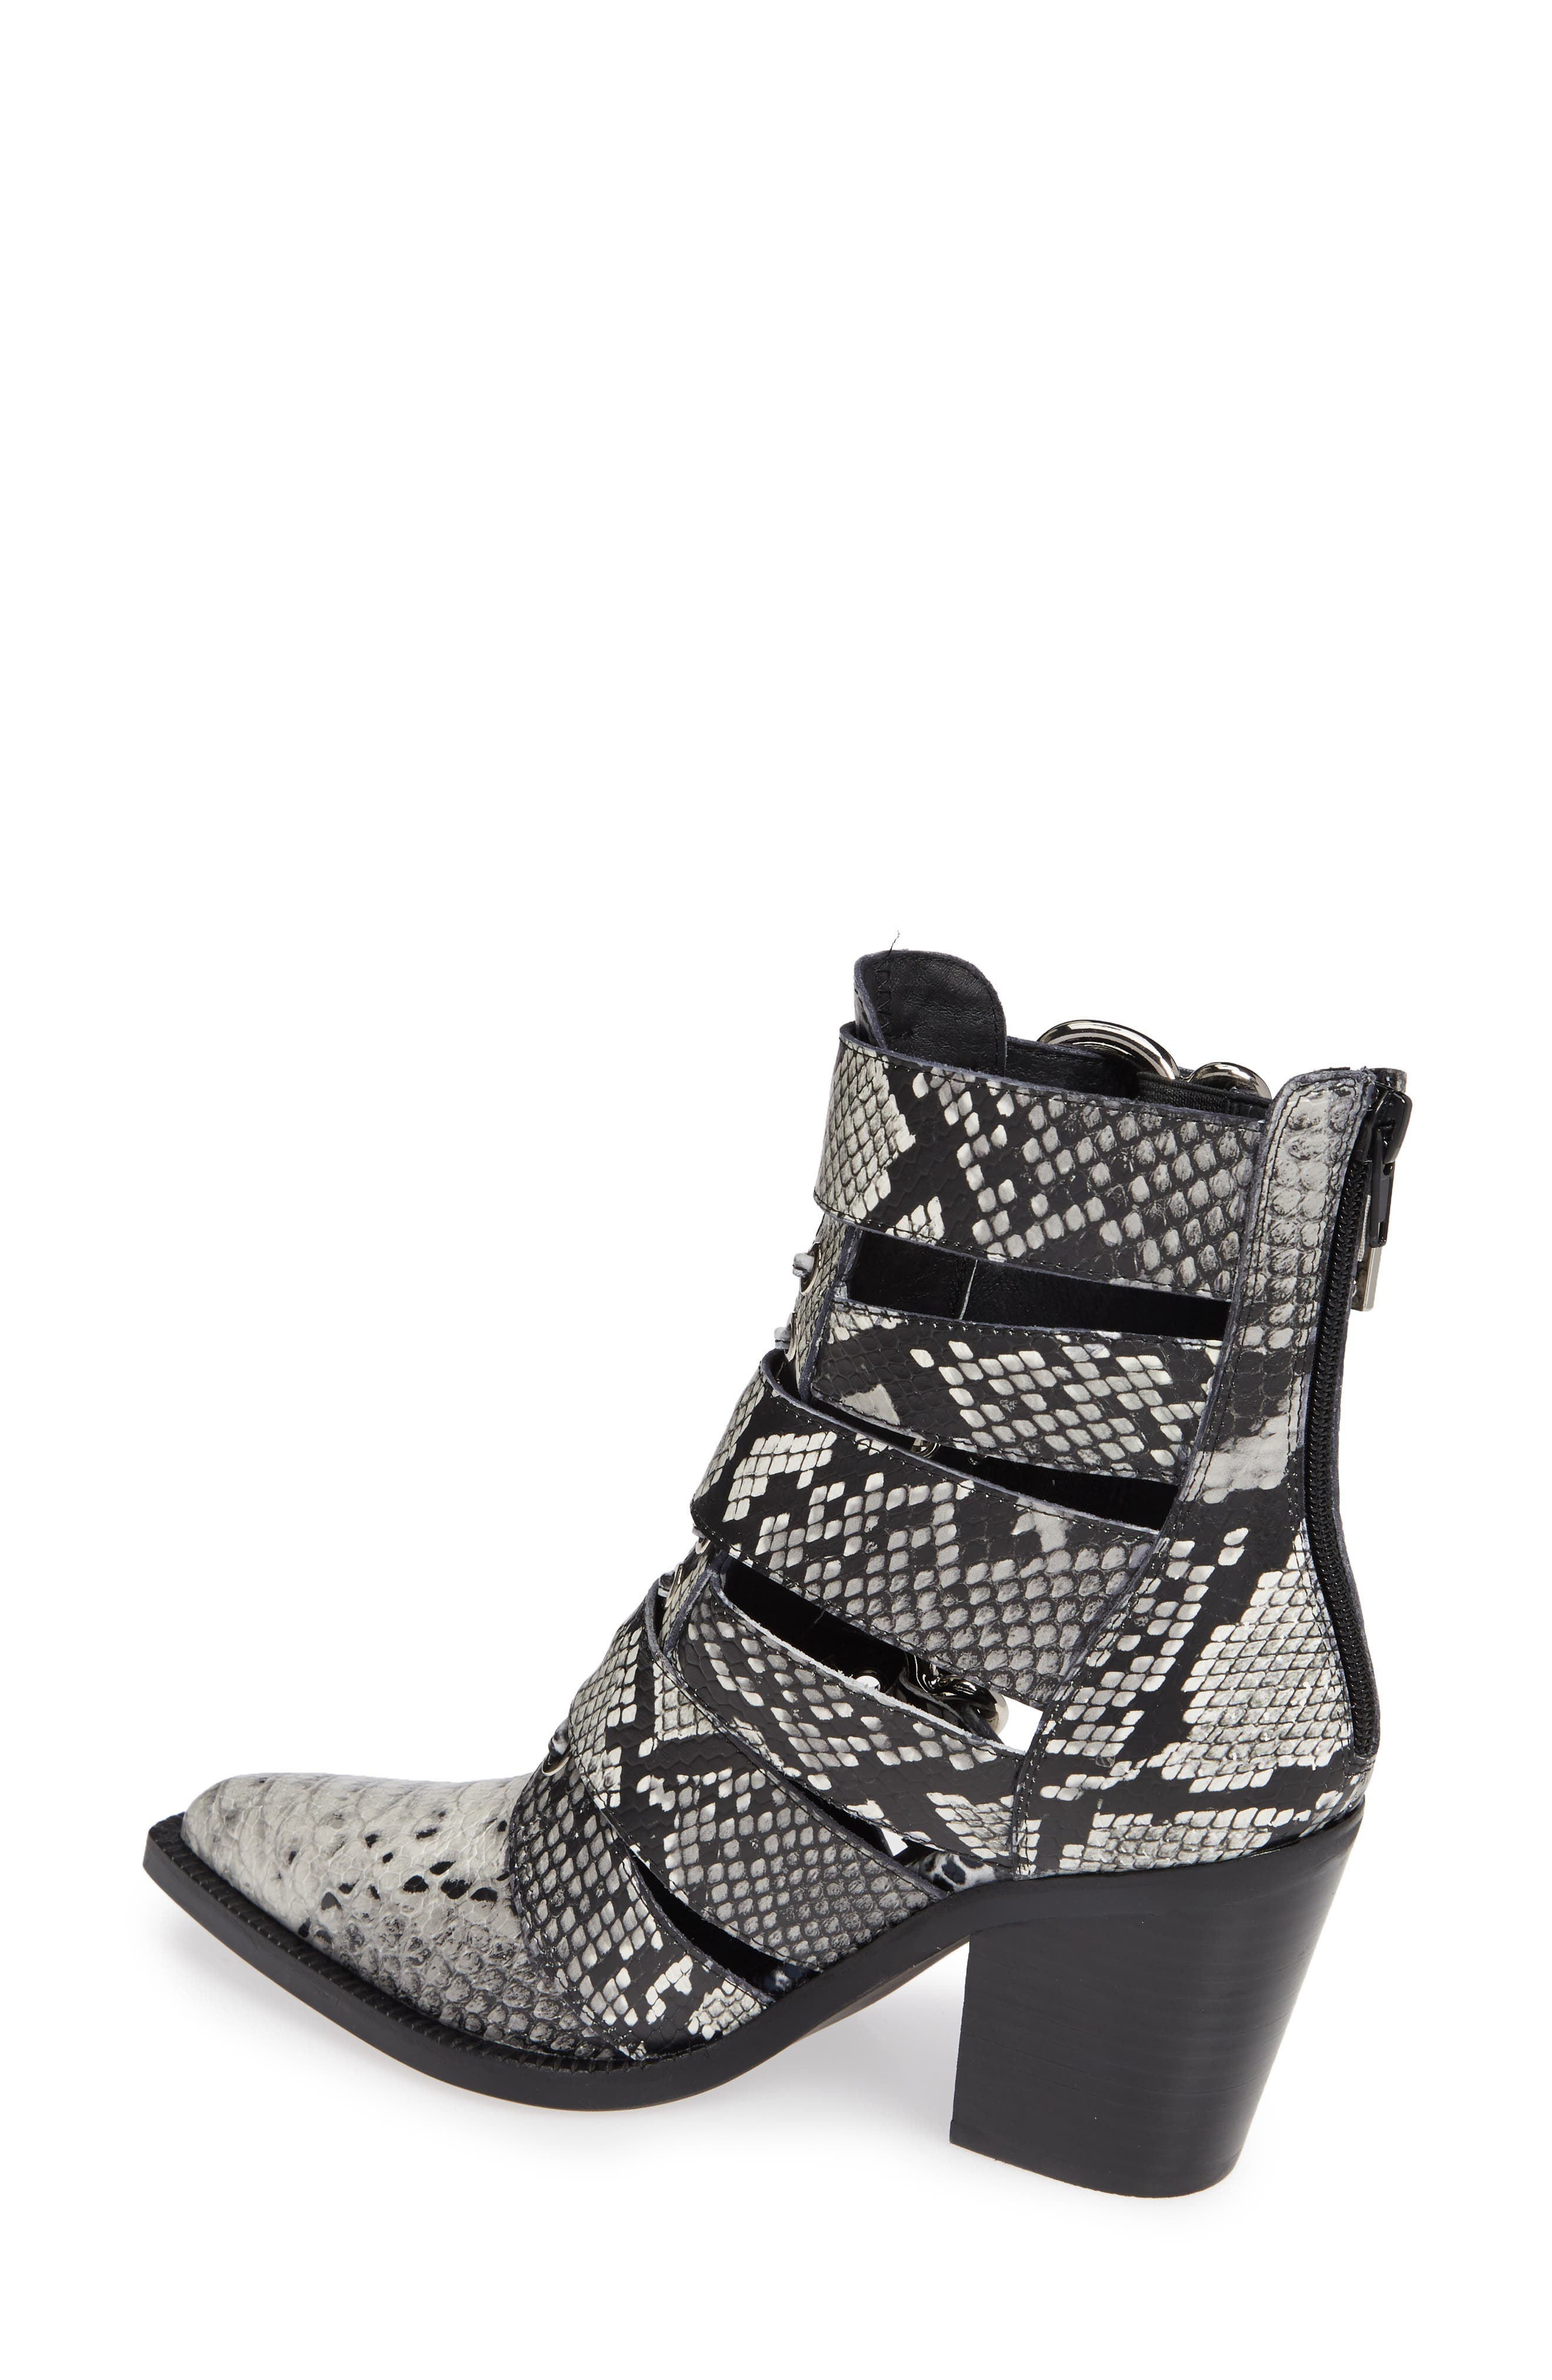 JEFFREY CAMPBELL, Caceres Bootie, Alternate thumbnail 2, color, 001